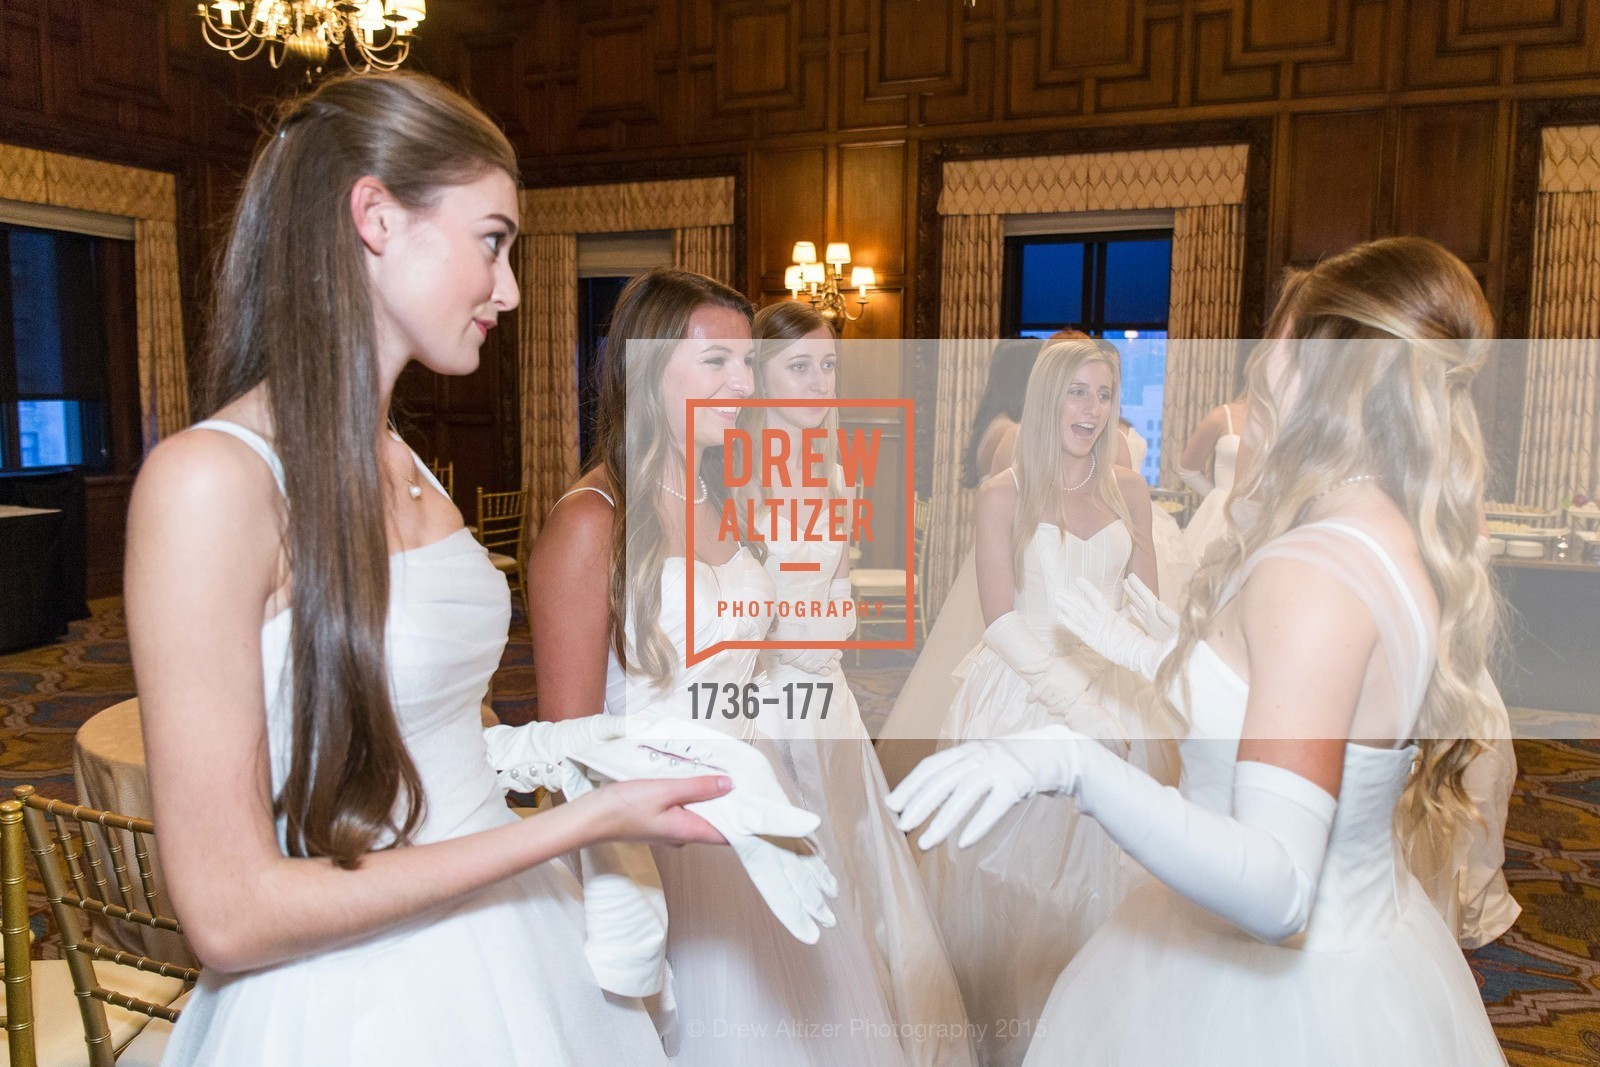 Madeleine Elizabeth Lamm, Rachael Jayne Maier, Brooke Emily Raabe, Mary Grinnell, The 2015 San Francisco Debutante Ball, The Westin St. Francis San Francisco Union Square. 335 Powell St, June 20th, 2015,Drew Altizer, Drew Altizer Photography, full-service agency, private events, San Francisco photographer, photographer california